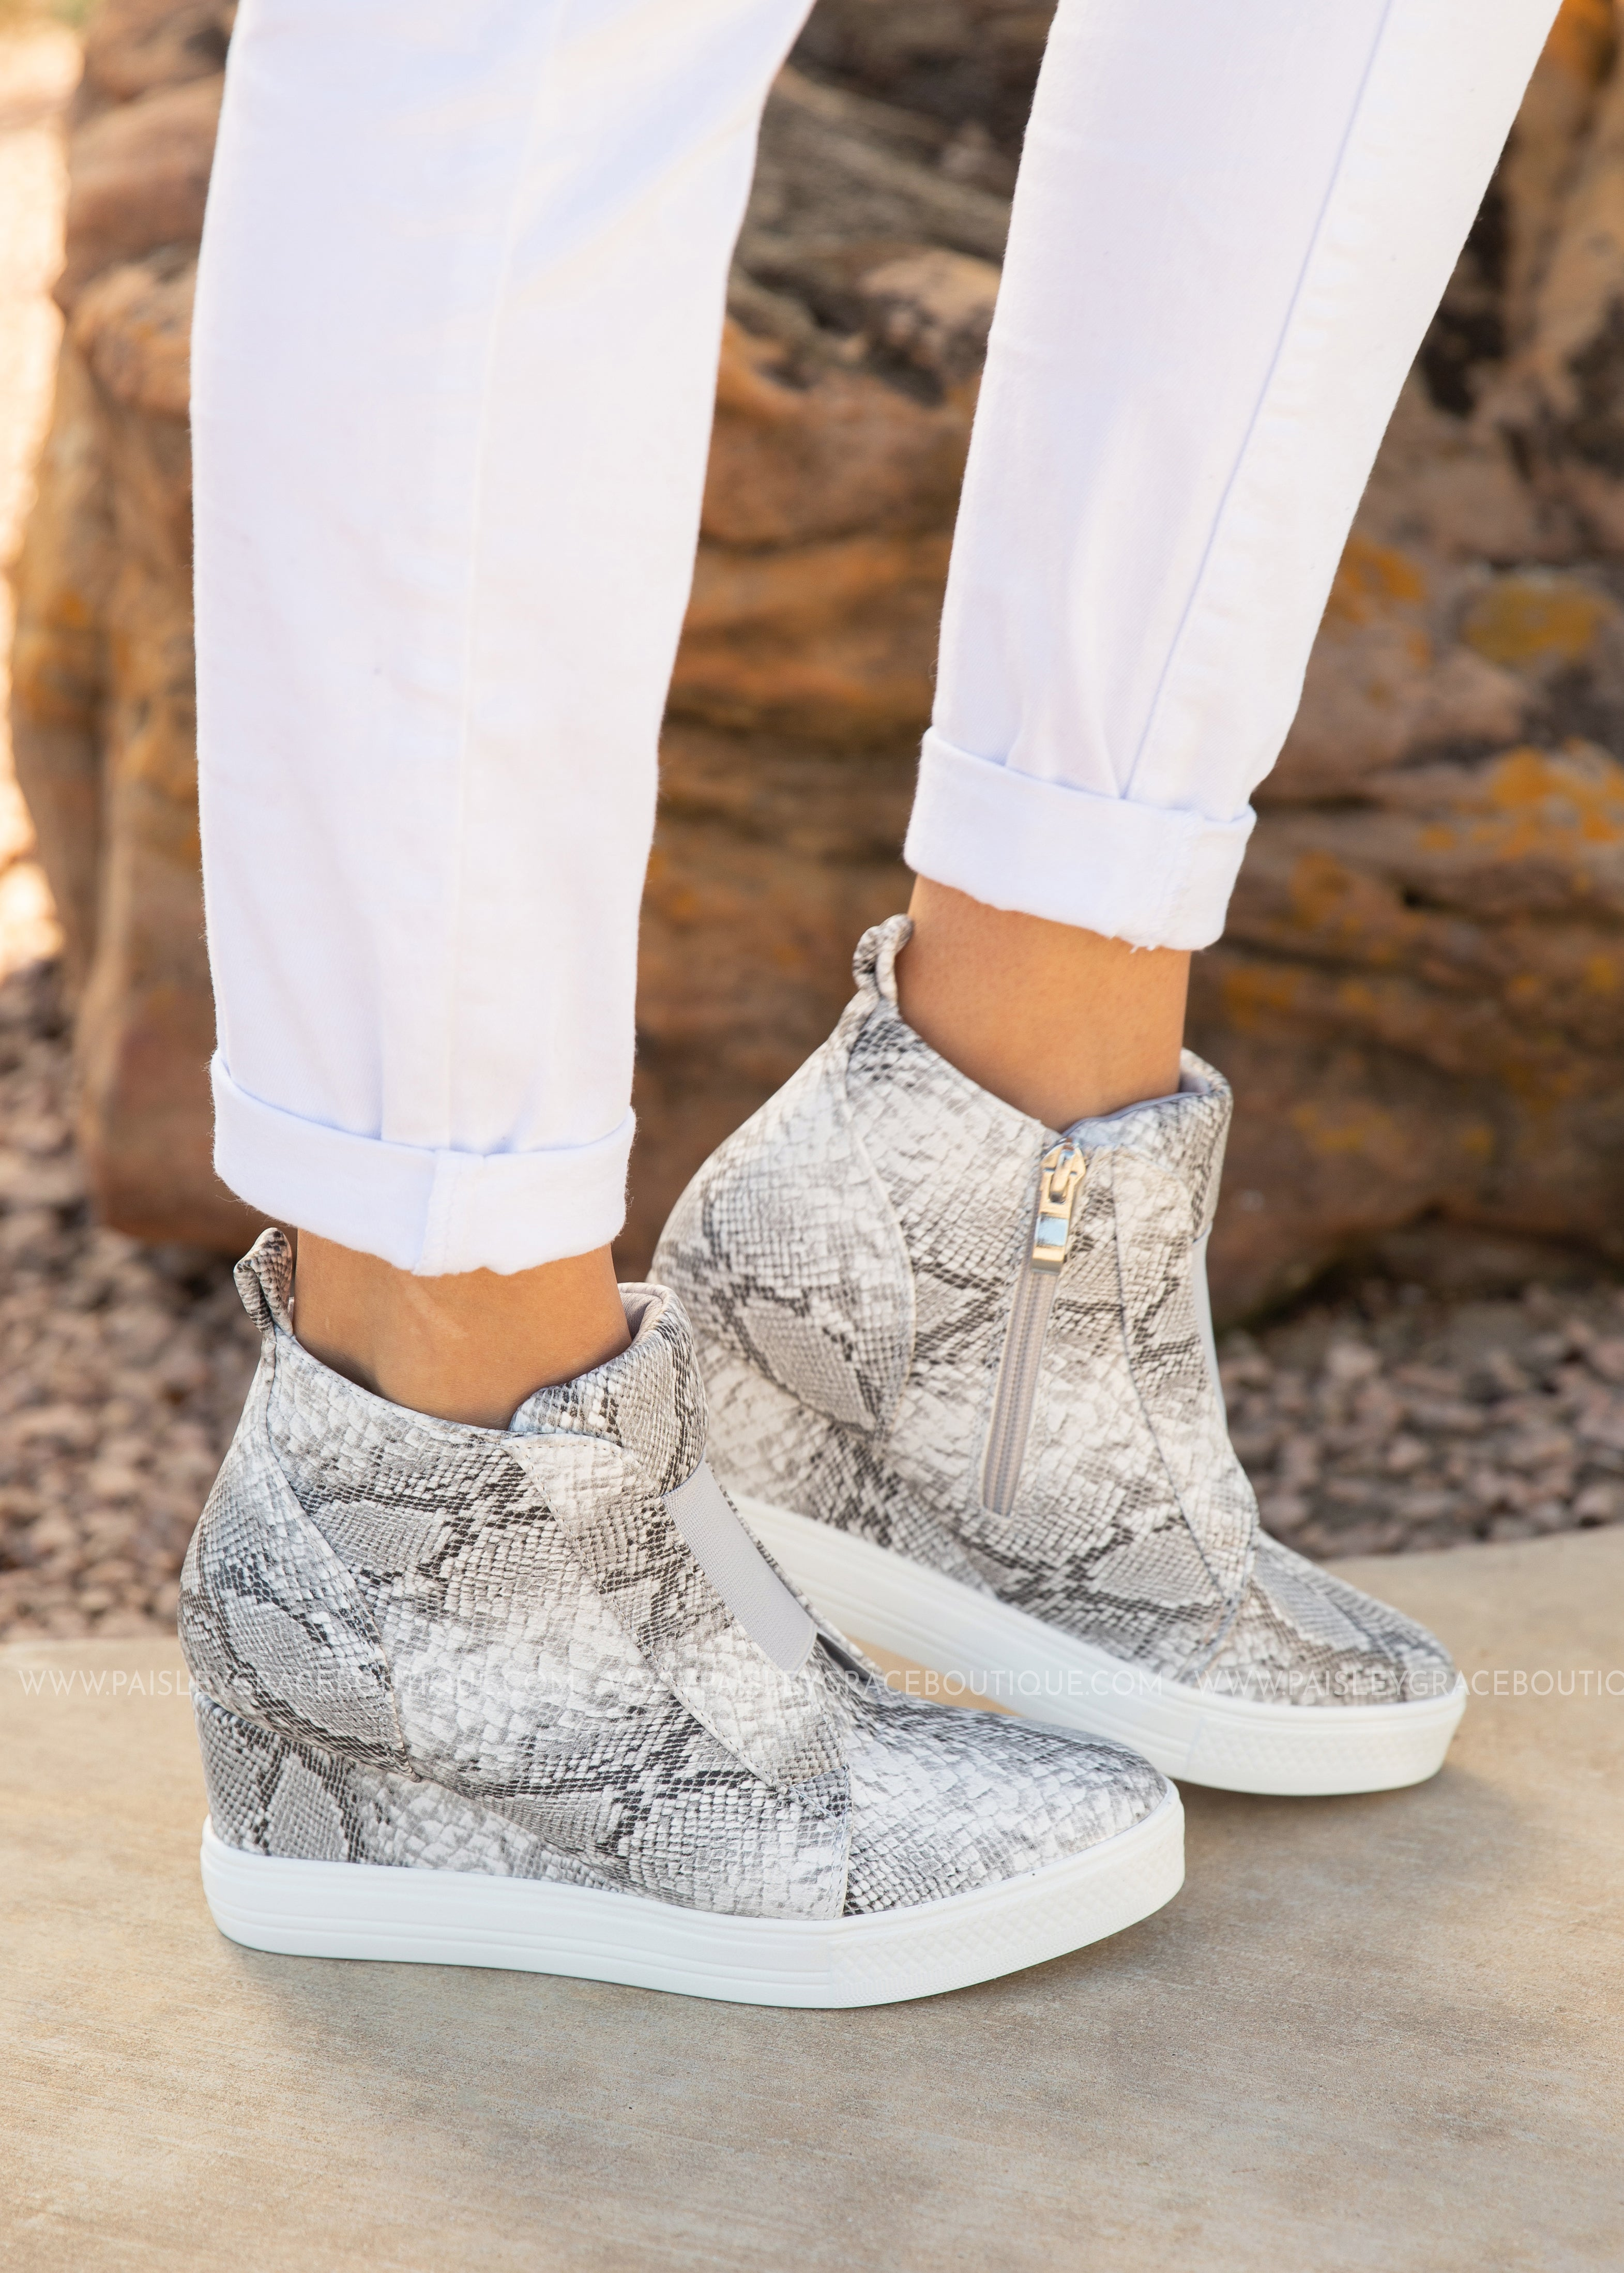 ae315a1ef3 Zoey Wedge Sneaker - SNAKE - Paisley Grace Boutique